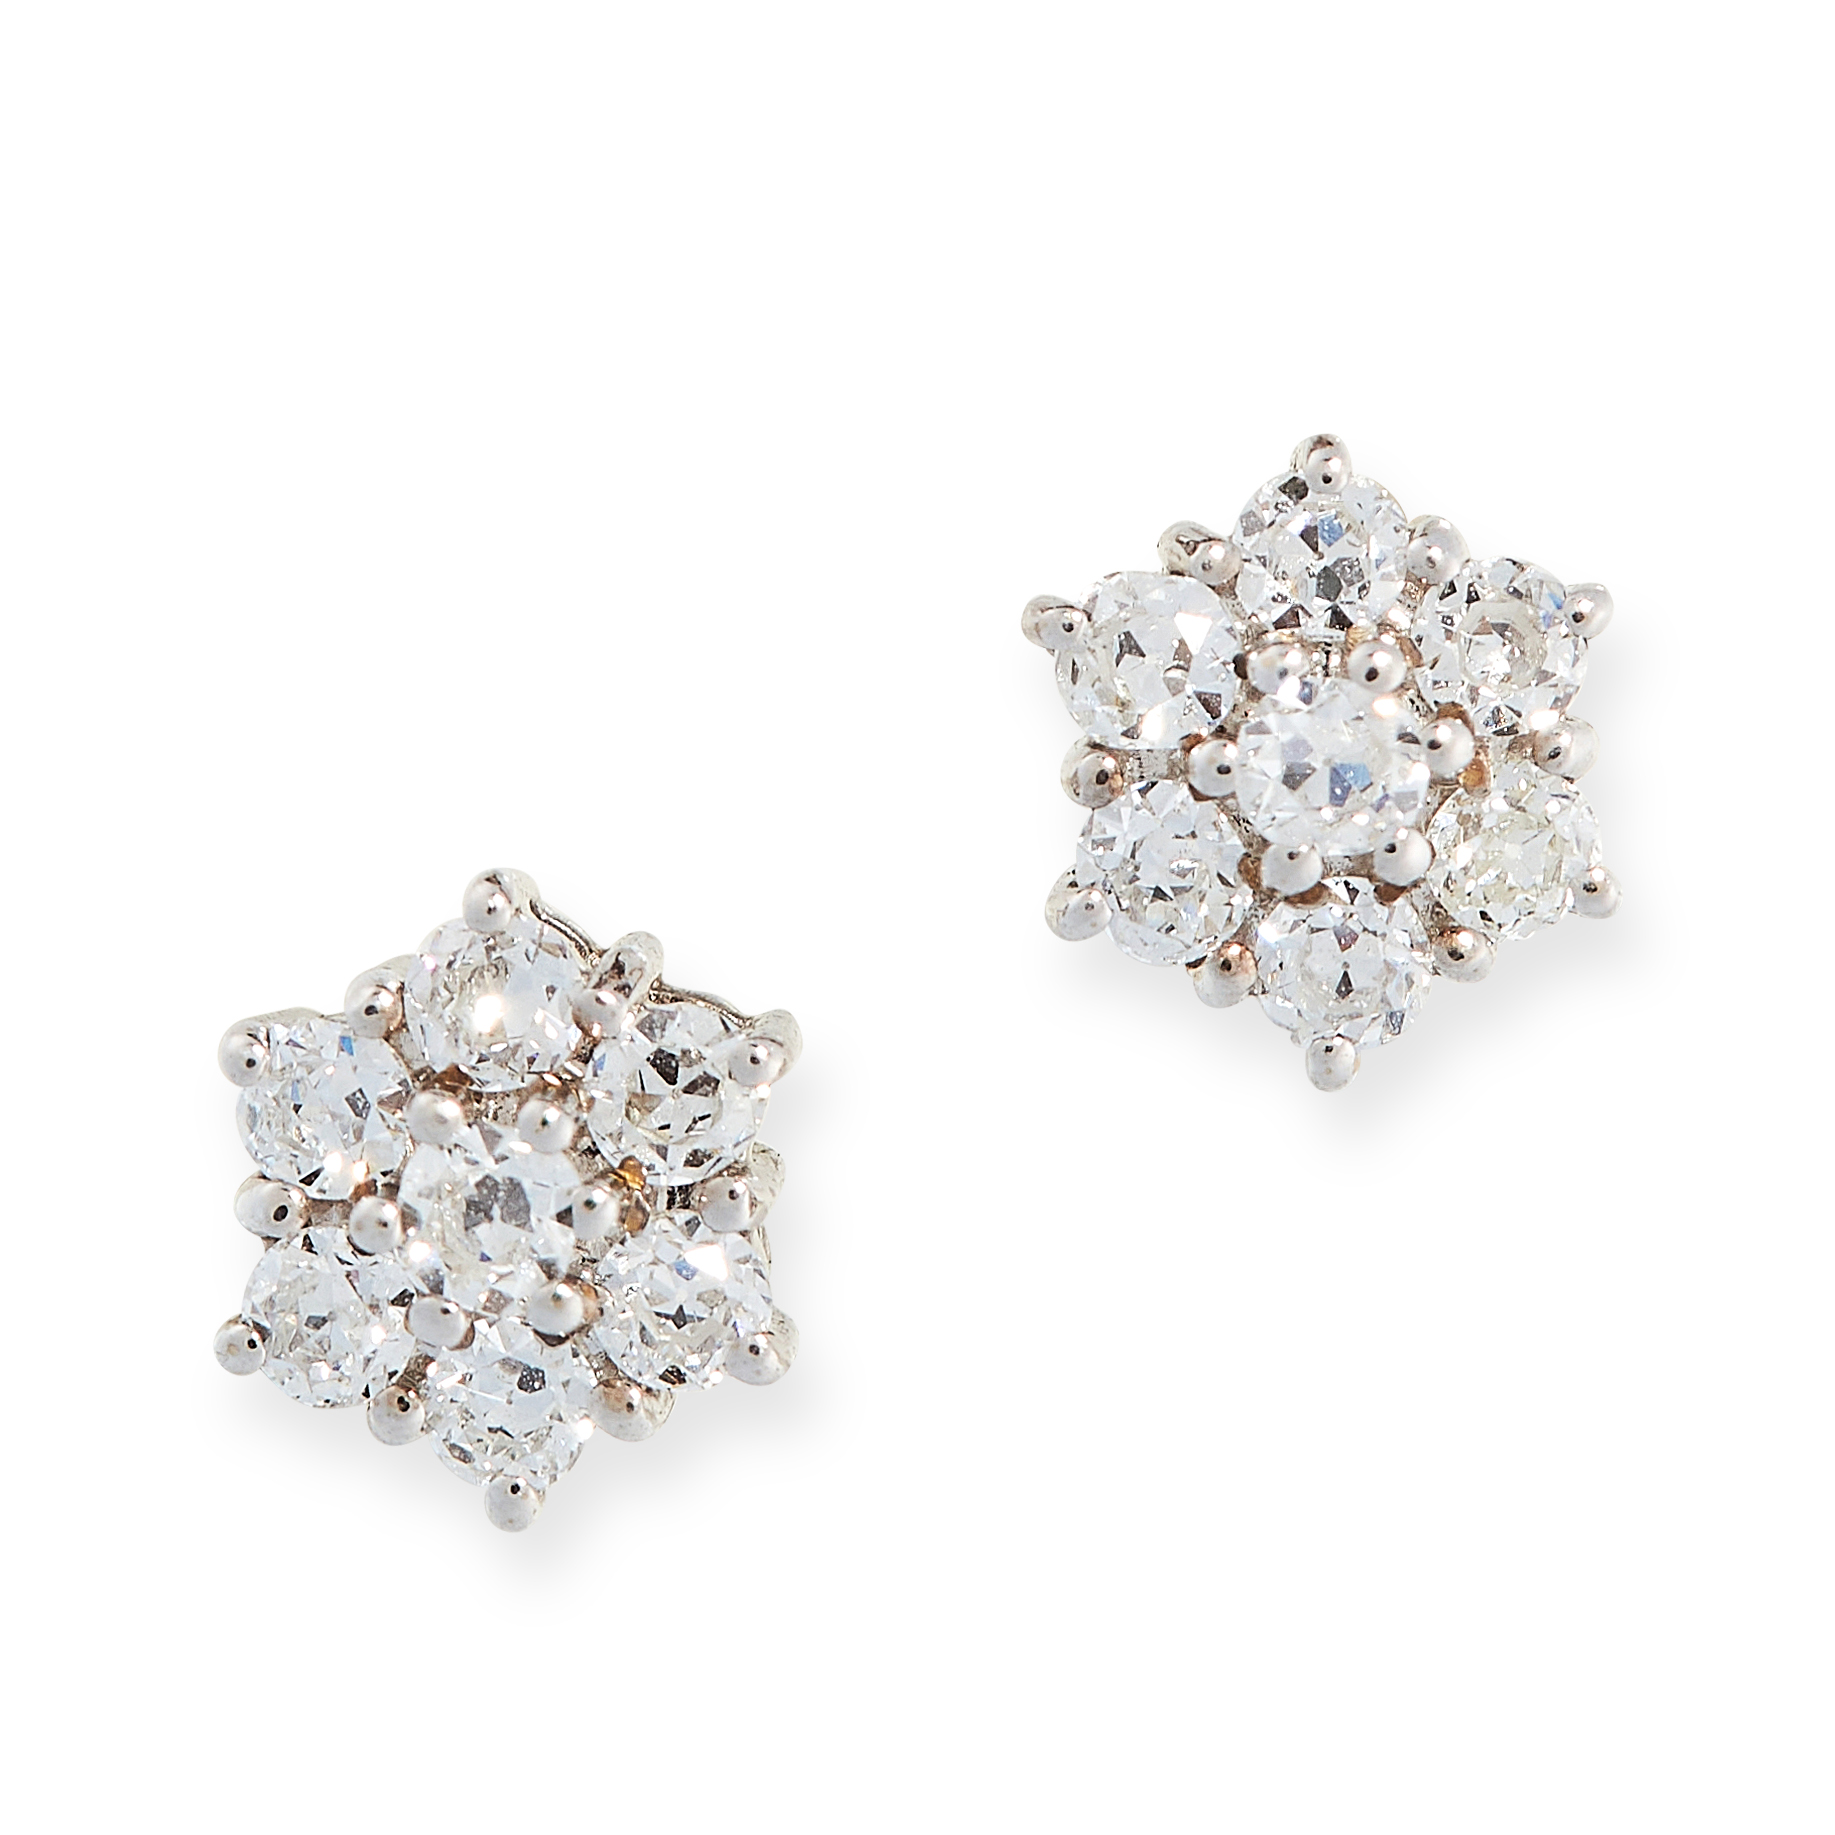 PAIR OF DIAMOND CLUSTER STUD EARRINGS in 18ct white gold, each designed as a cluster of old cut